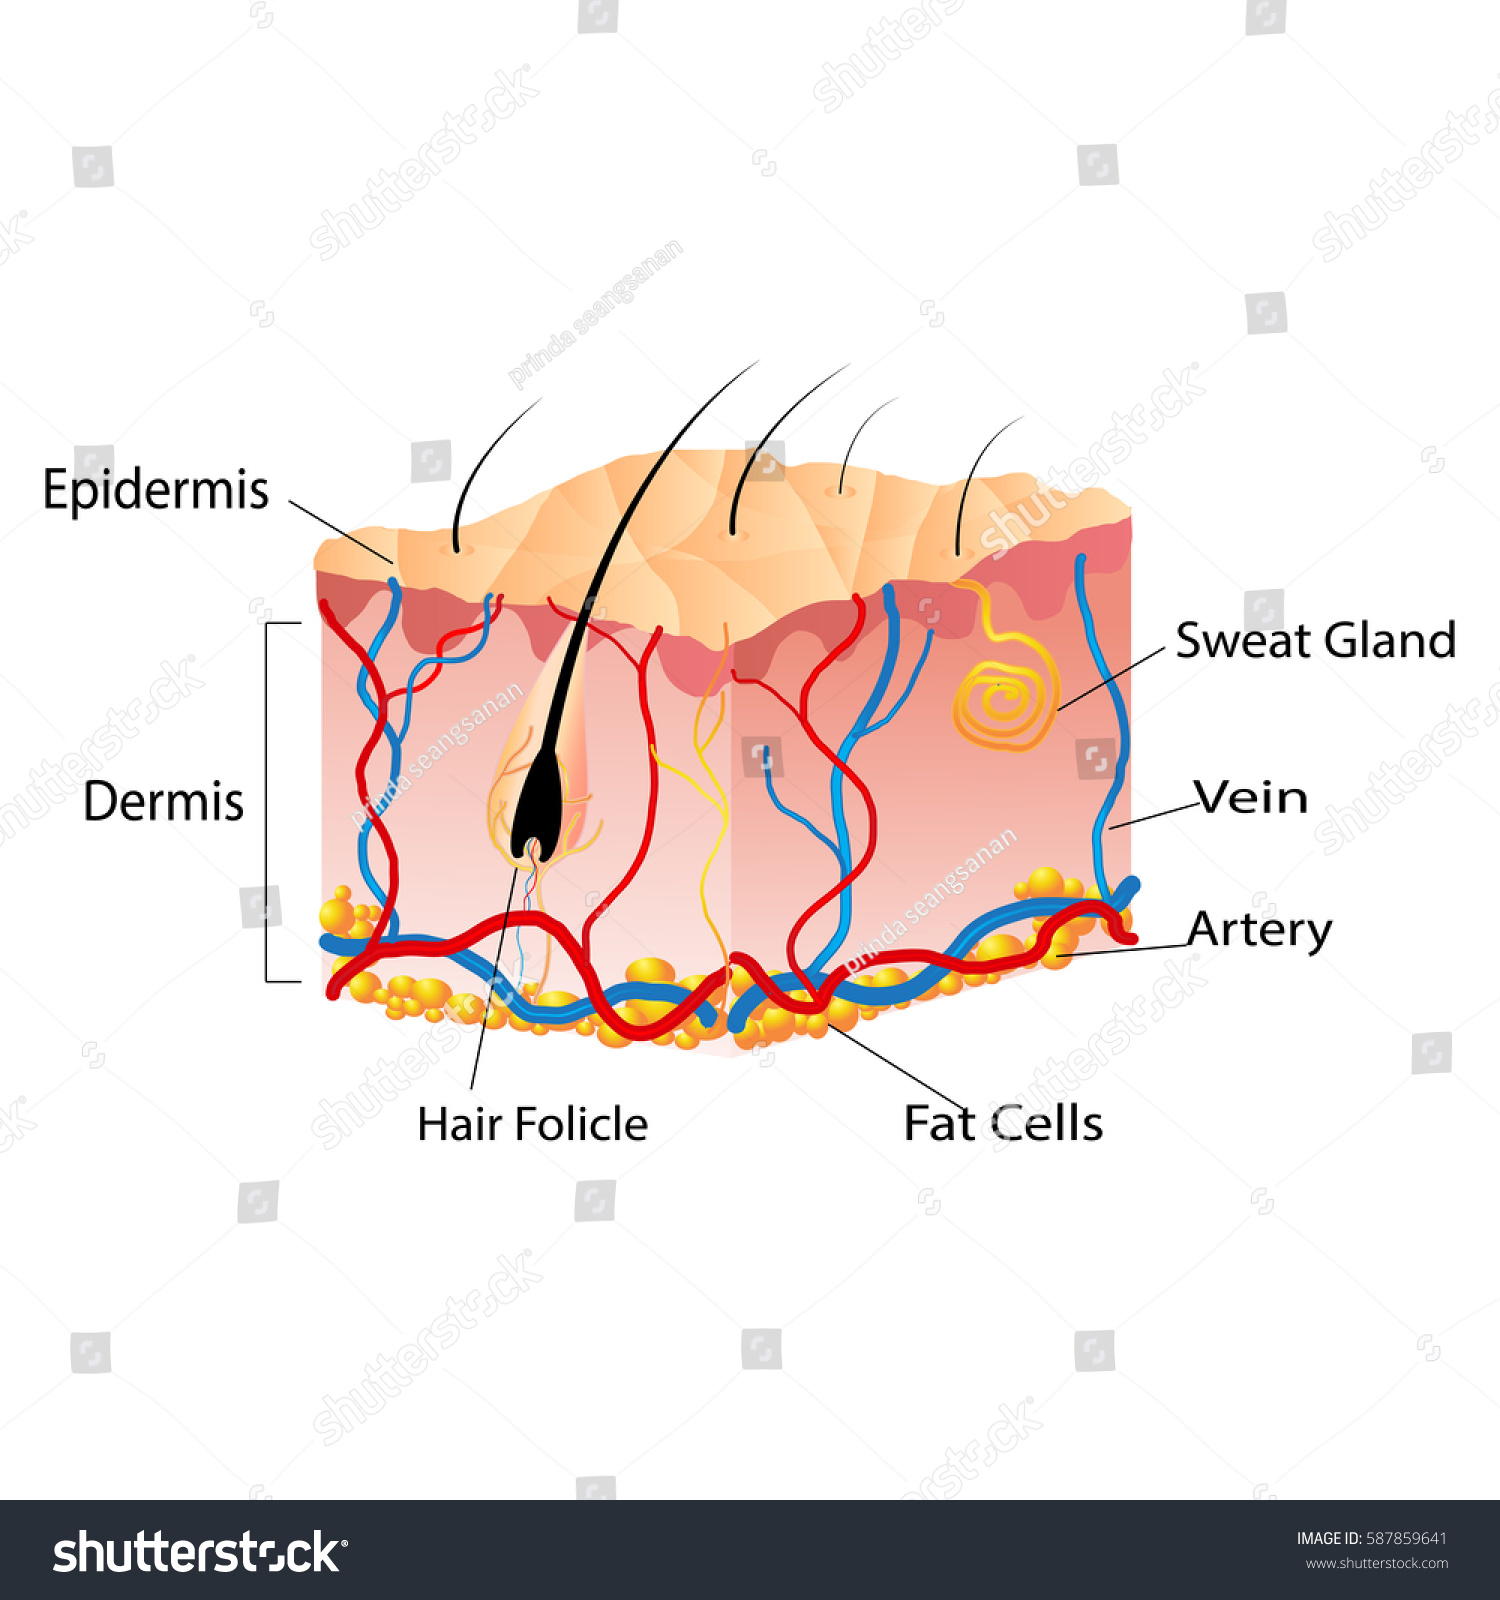 Structure Skin Cells Under Skin Show Stock Vector (Royalty Free ...